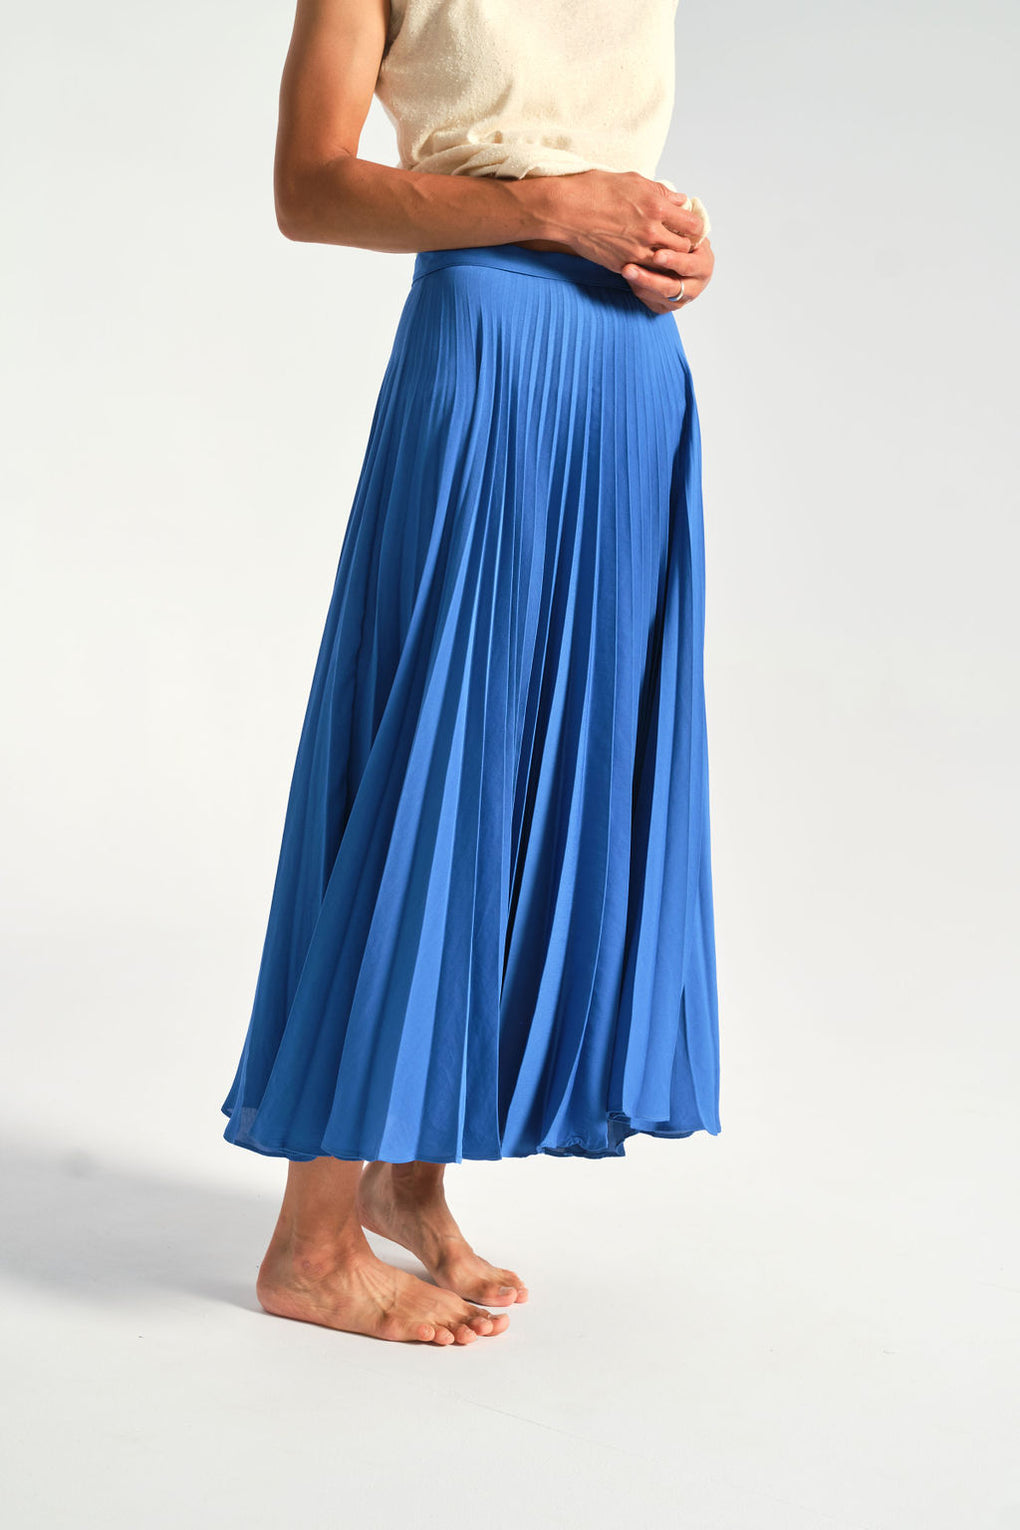 Shaina Mote-aster skirt-pleated skirt-blue skirt-Idun-St. Paul